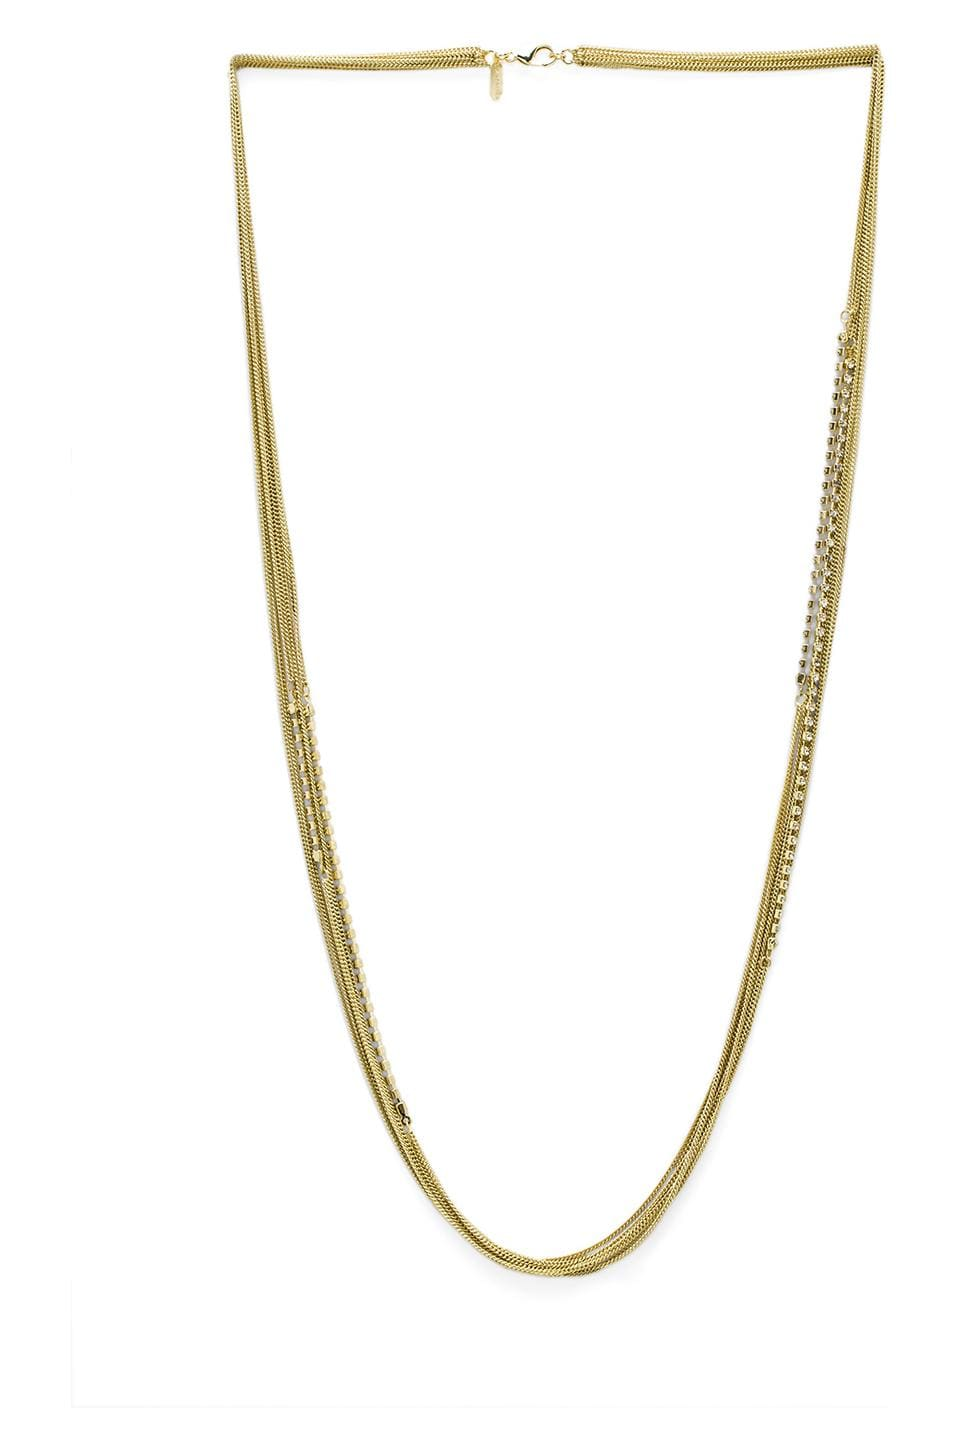 Lisa Freede Crystals and Chains Necklace in Yellow Gold